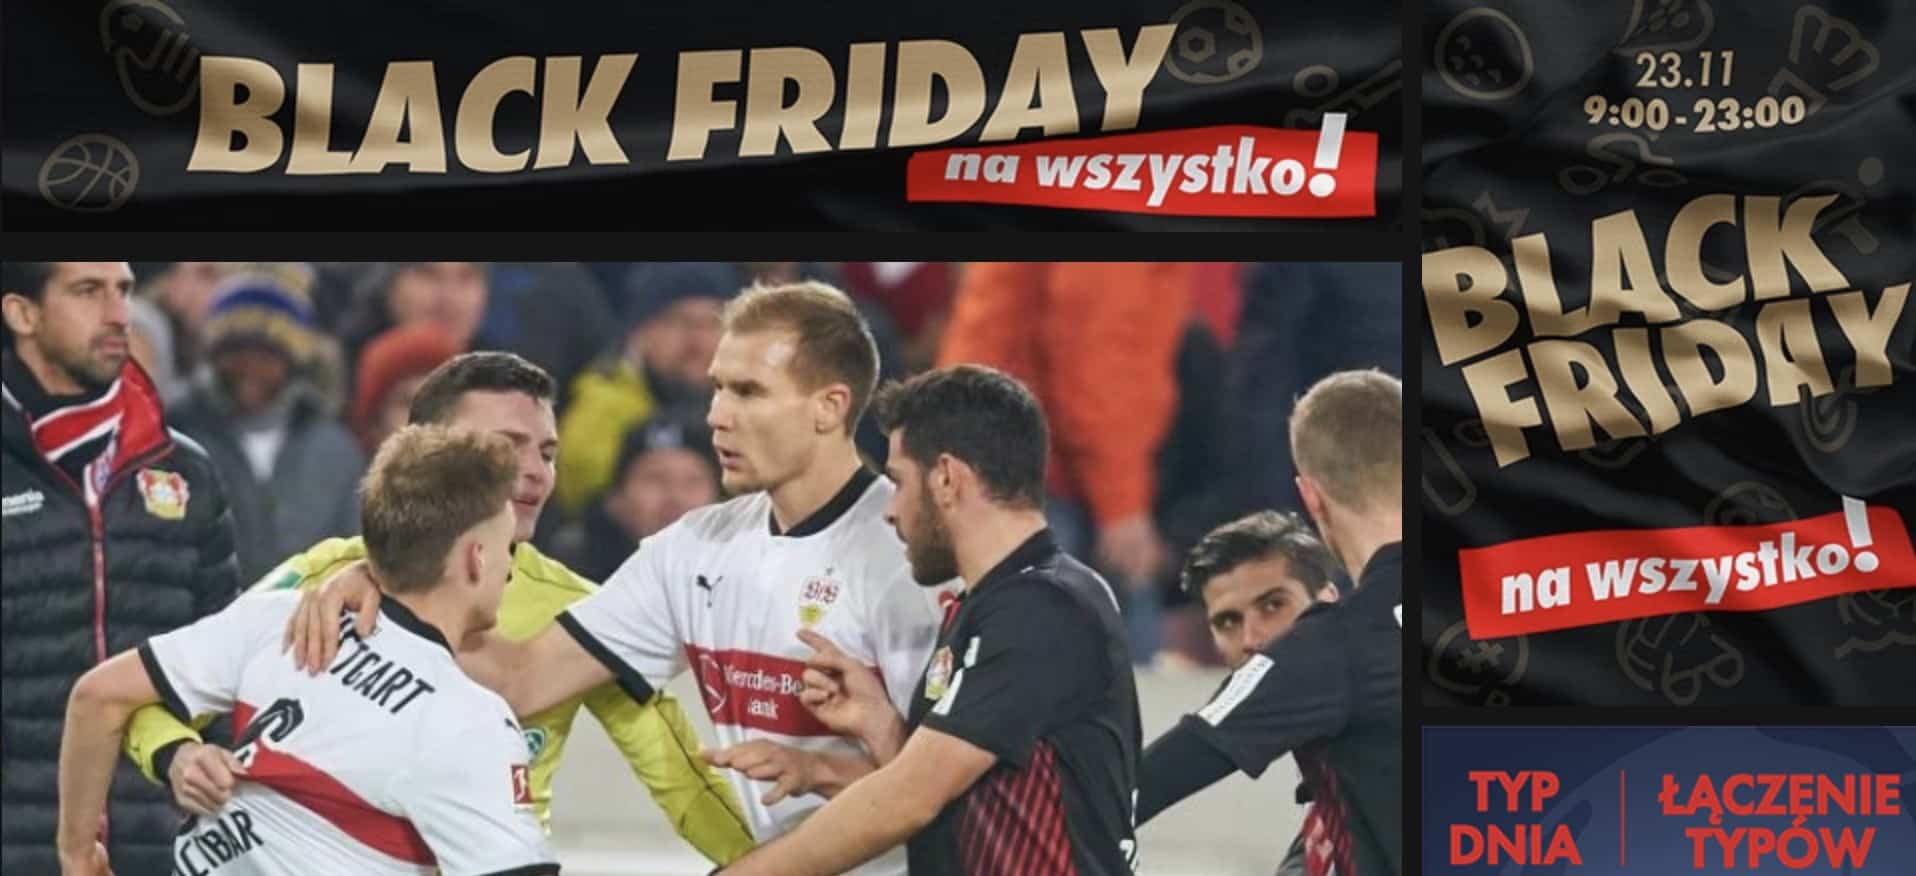 Photo of W Milenium Black Friday… na wszystko!